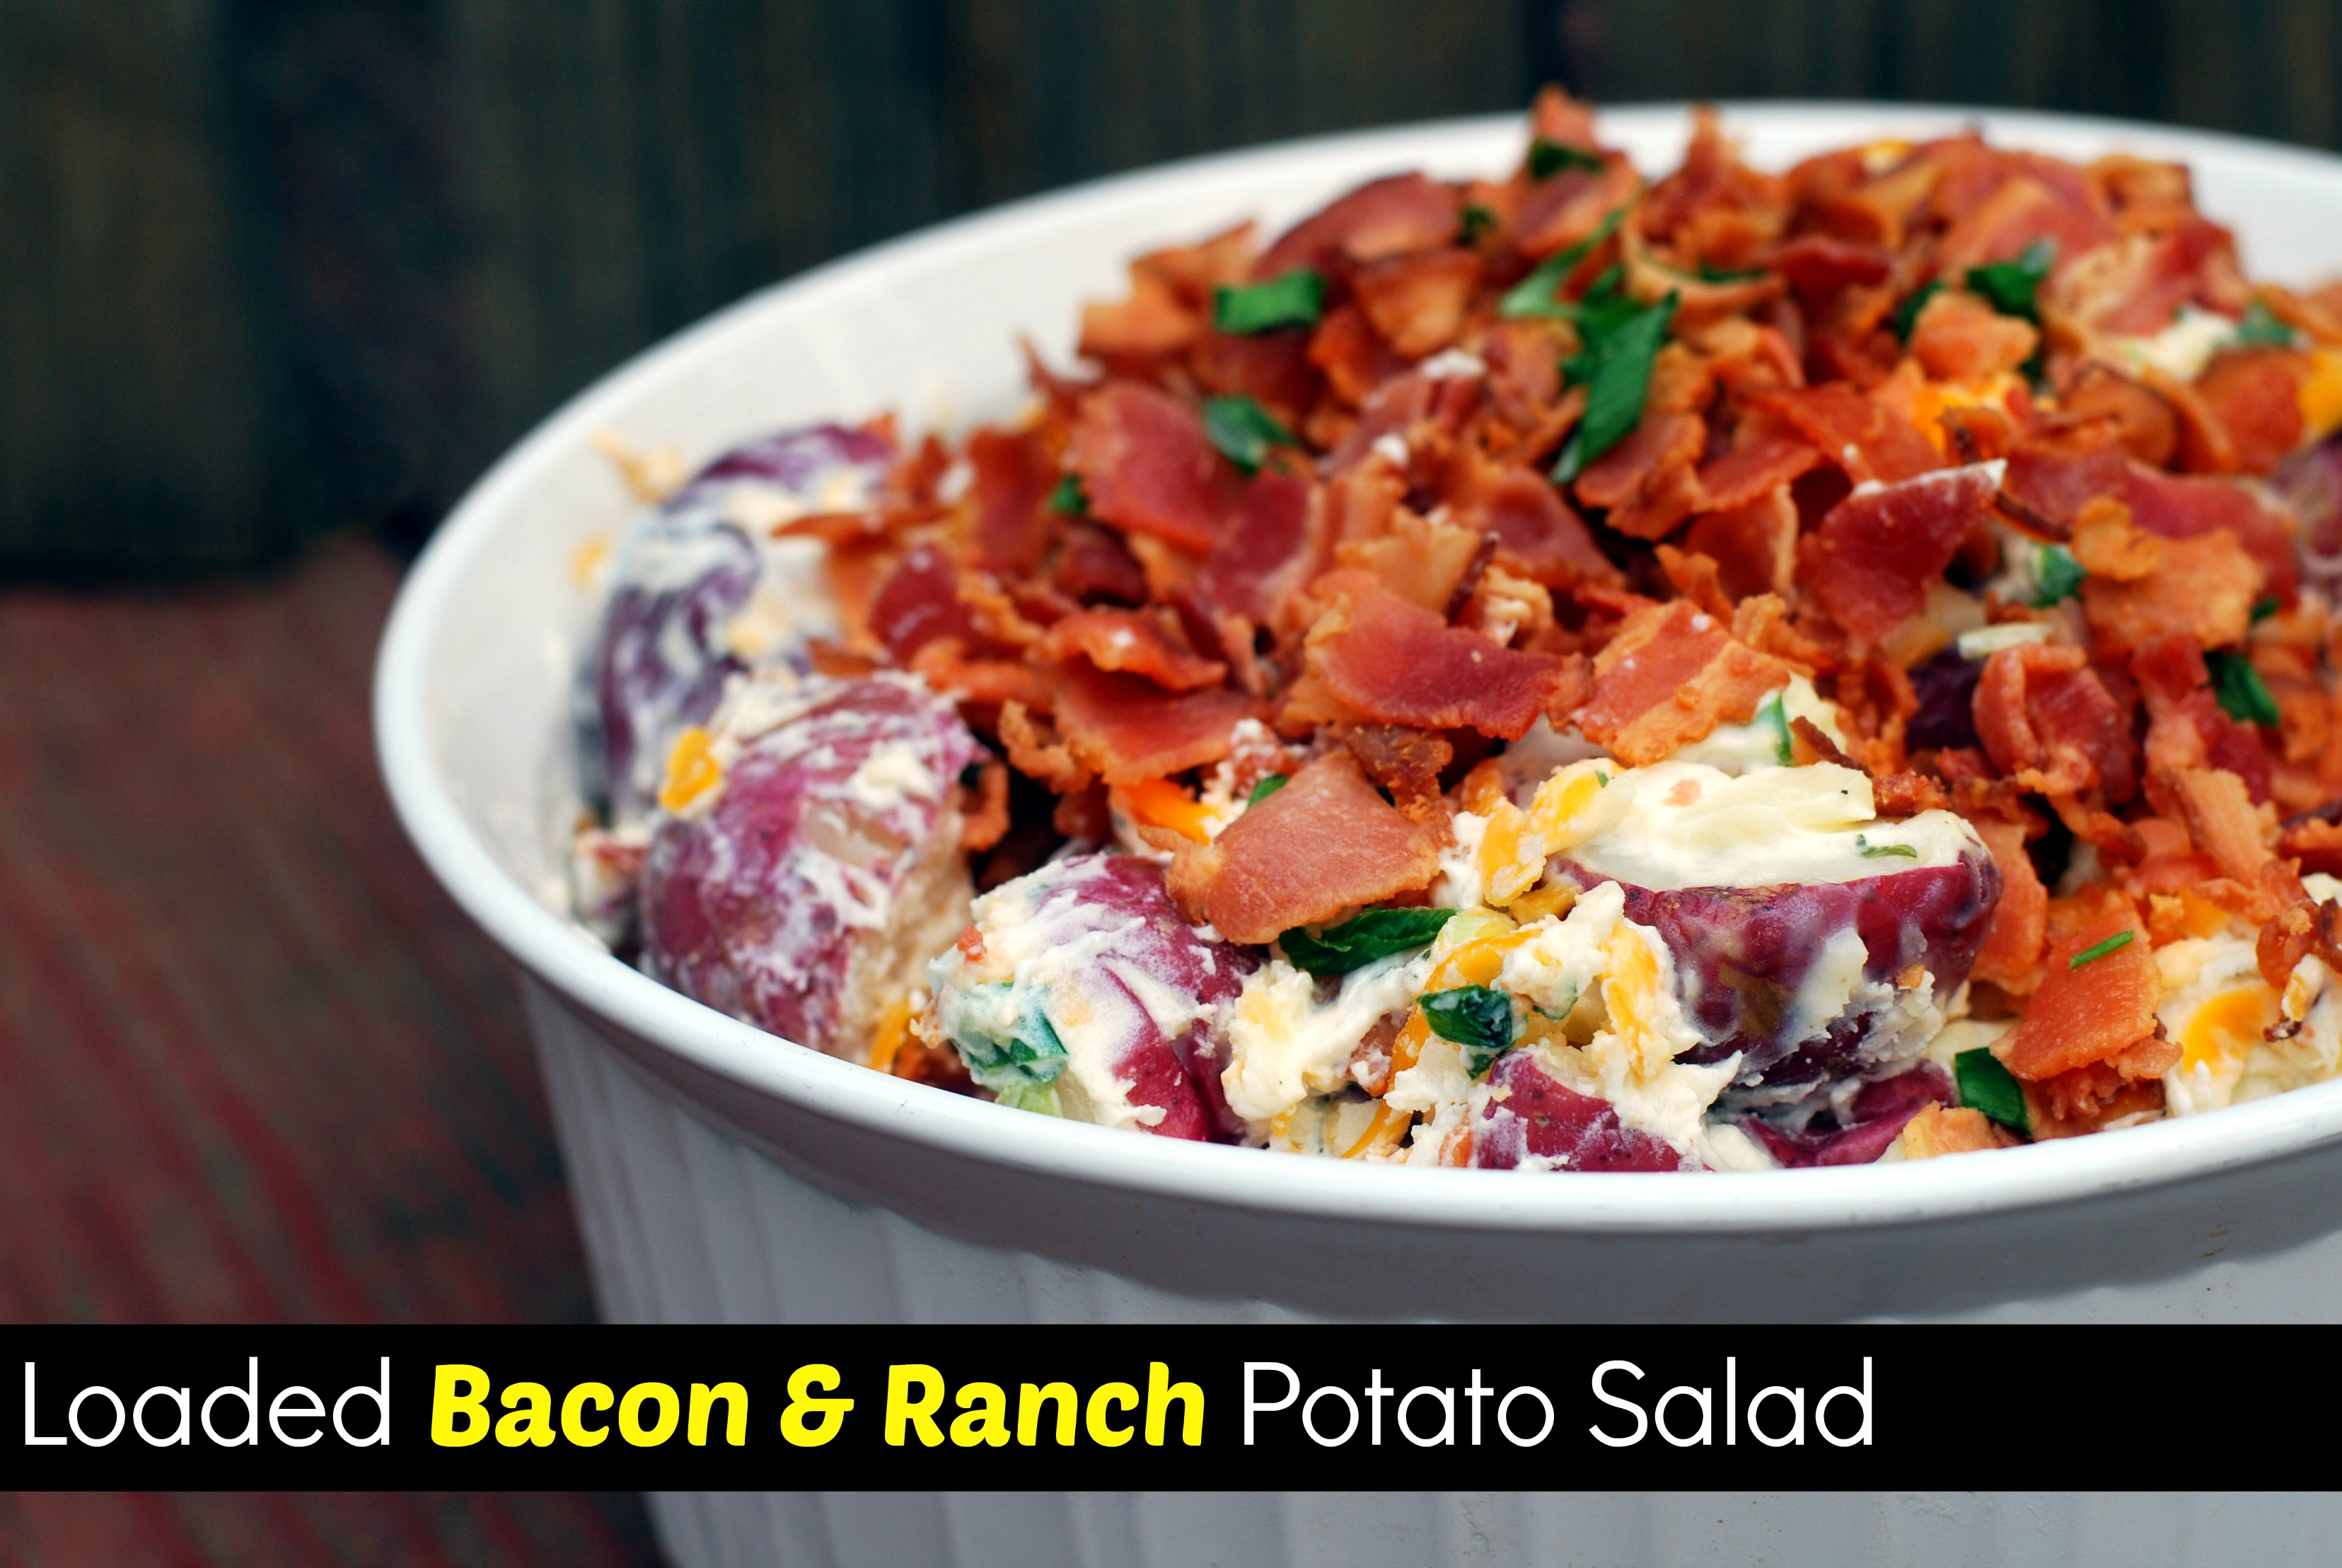 Loaded bacon ranch potato salad aunt bees recipes pdf loaded bacon ranch potato salad aunt bees recipes forumfinder Choice Image